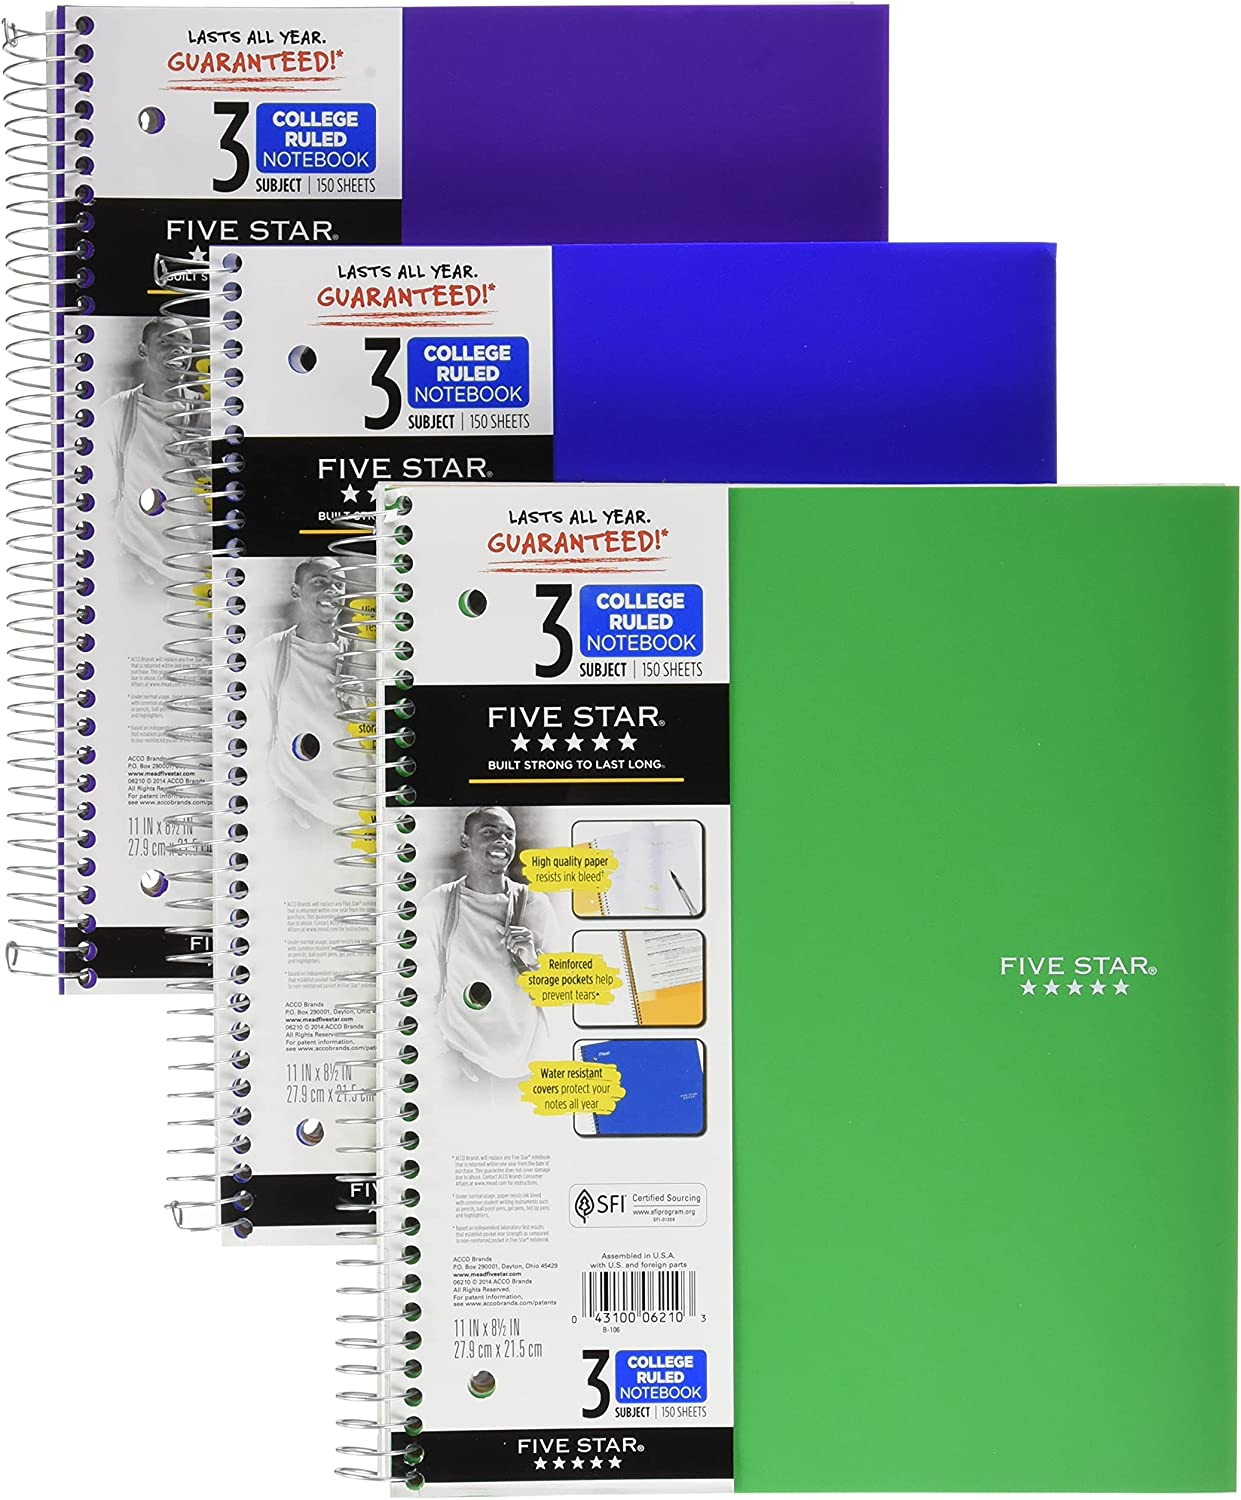 Five Star Spiral Notebooks 3 College Ranking TOP4 Paper Complete Free Shipping 150 Ruled Subject